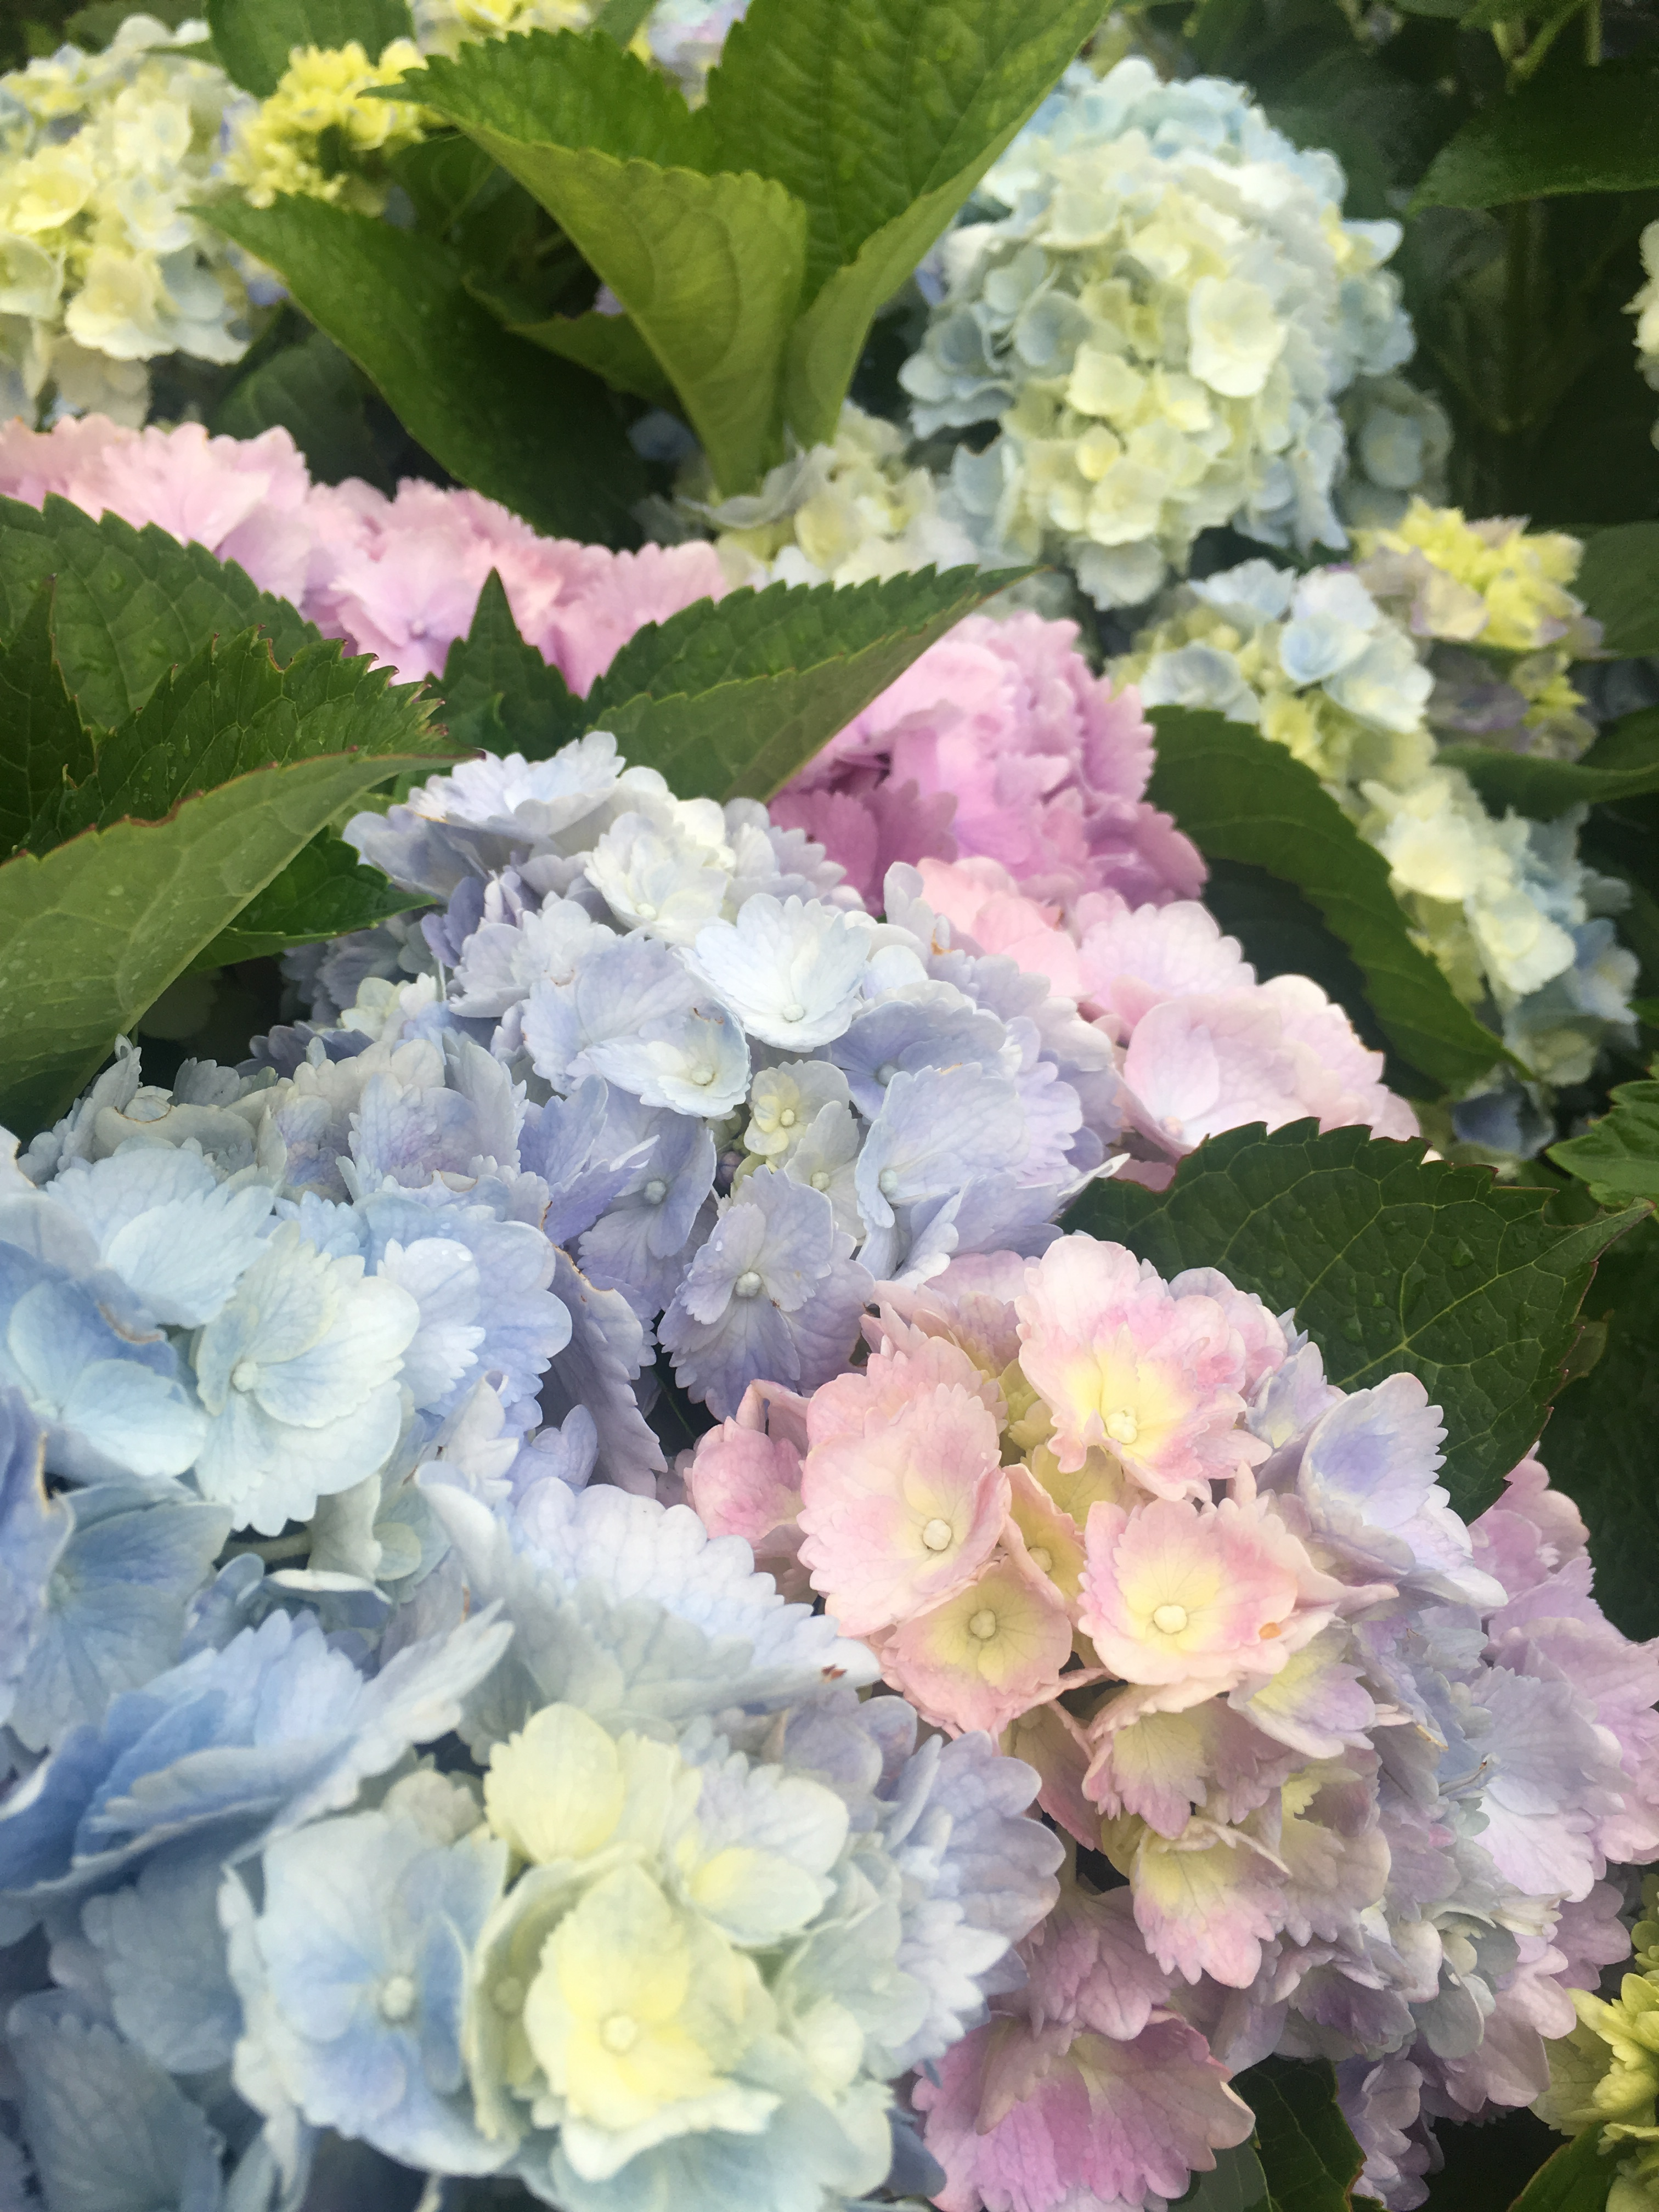 Not all Hydrangeas are able to change their flower color in the same way. Mop head Hydrangeas, Hydrangea macrophylla (the ones with big, round, ...